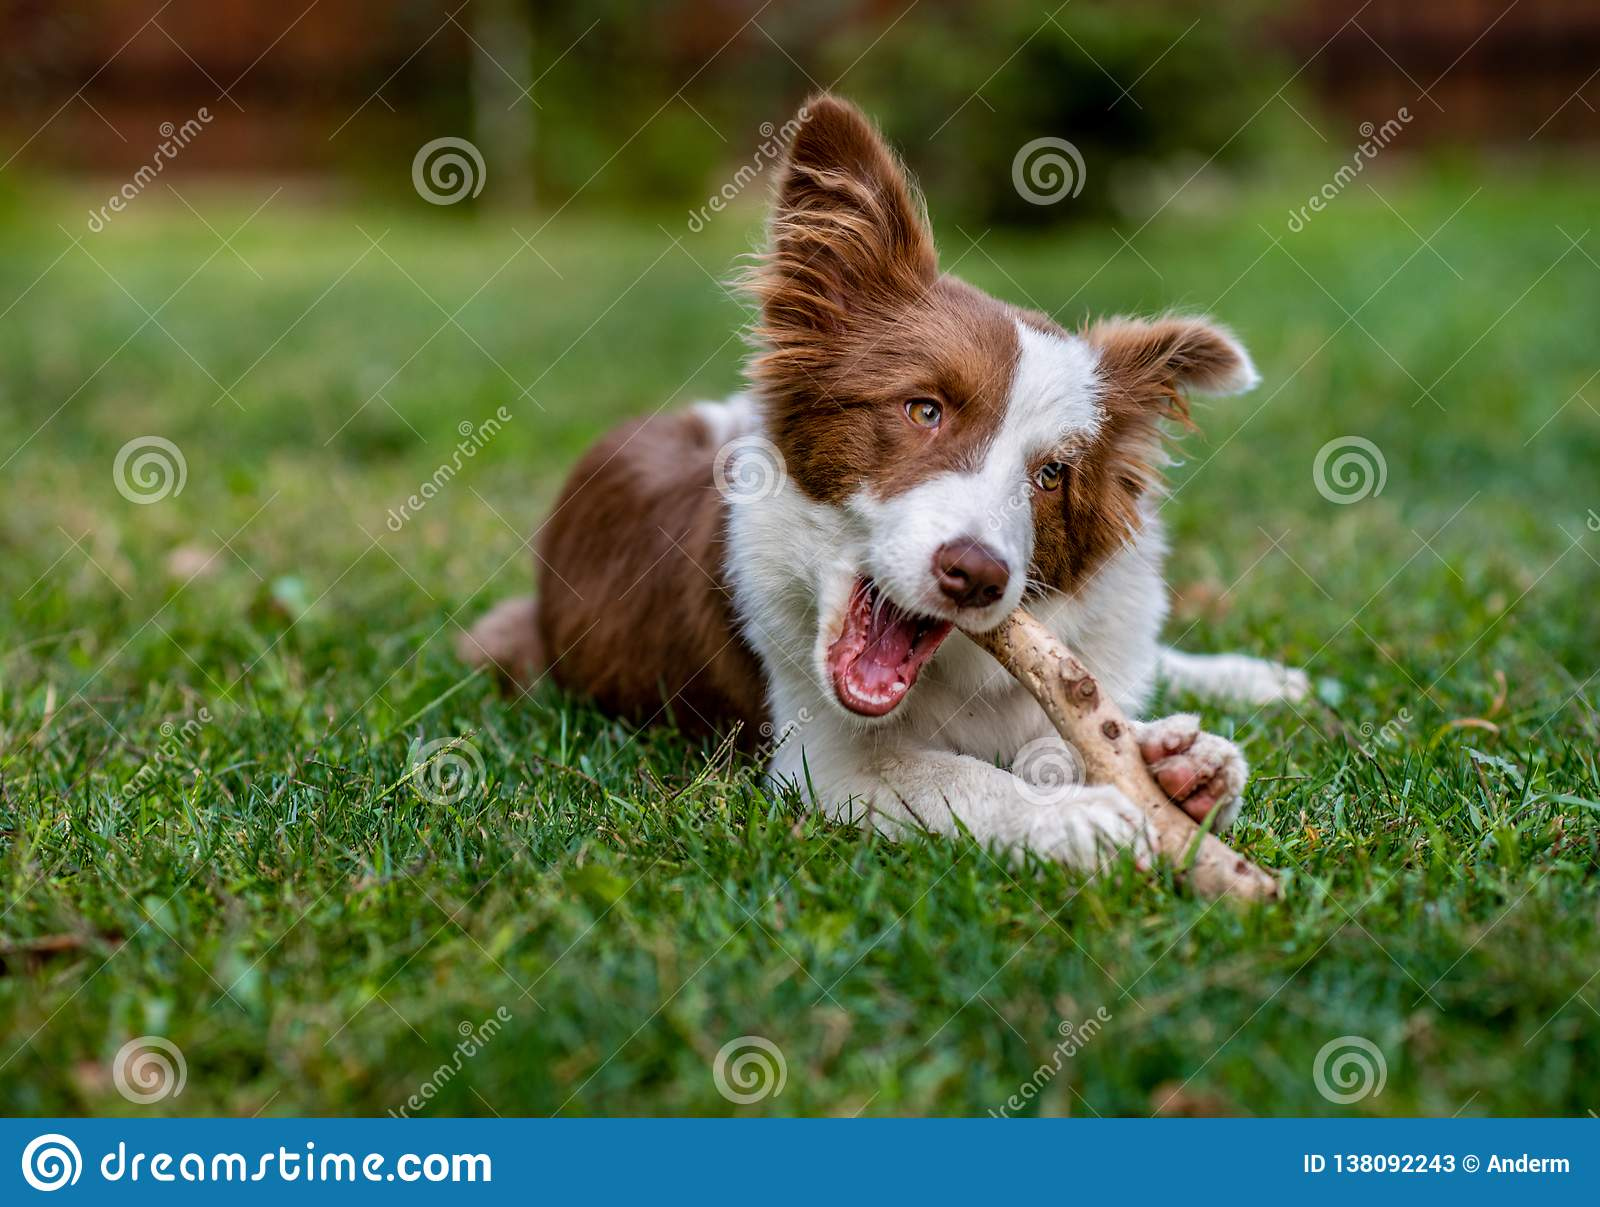 Brown border collie dog sitting on the ground